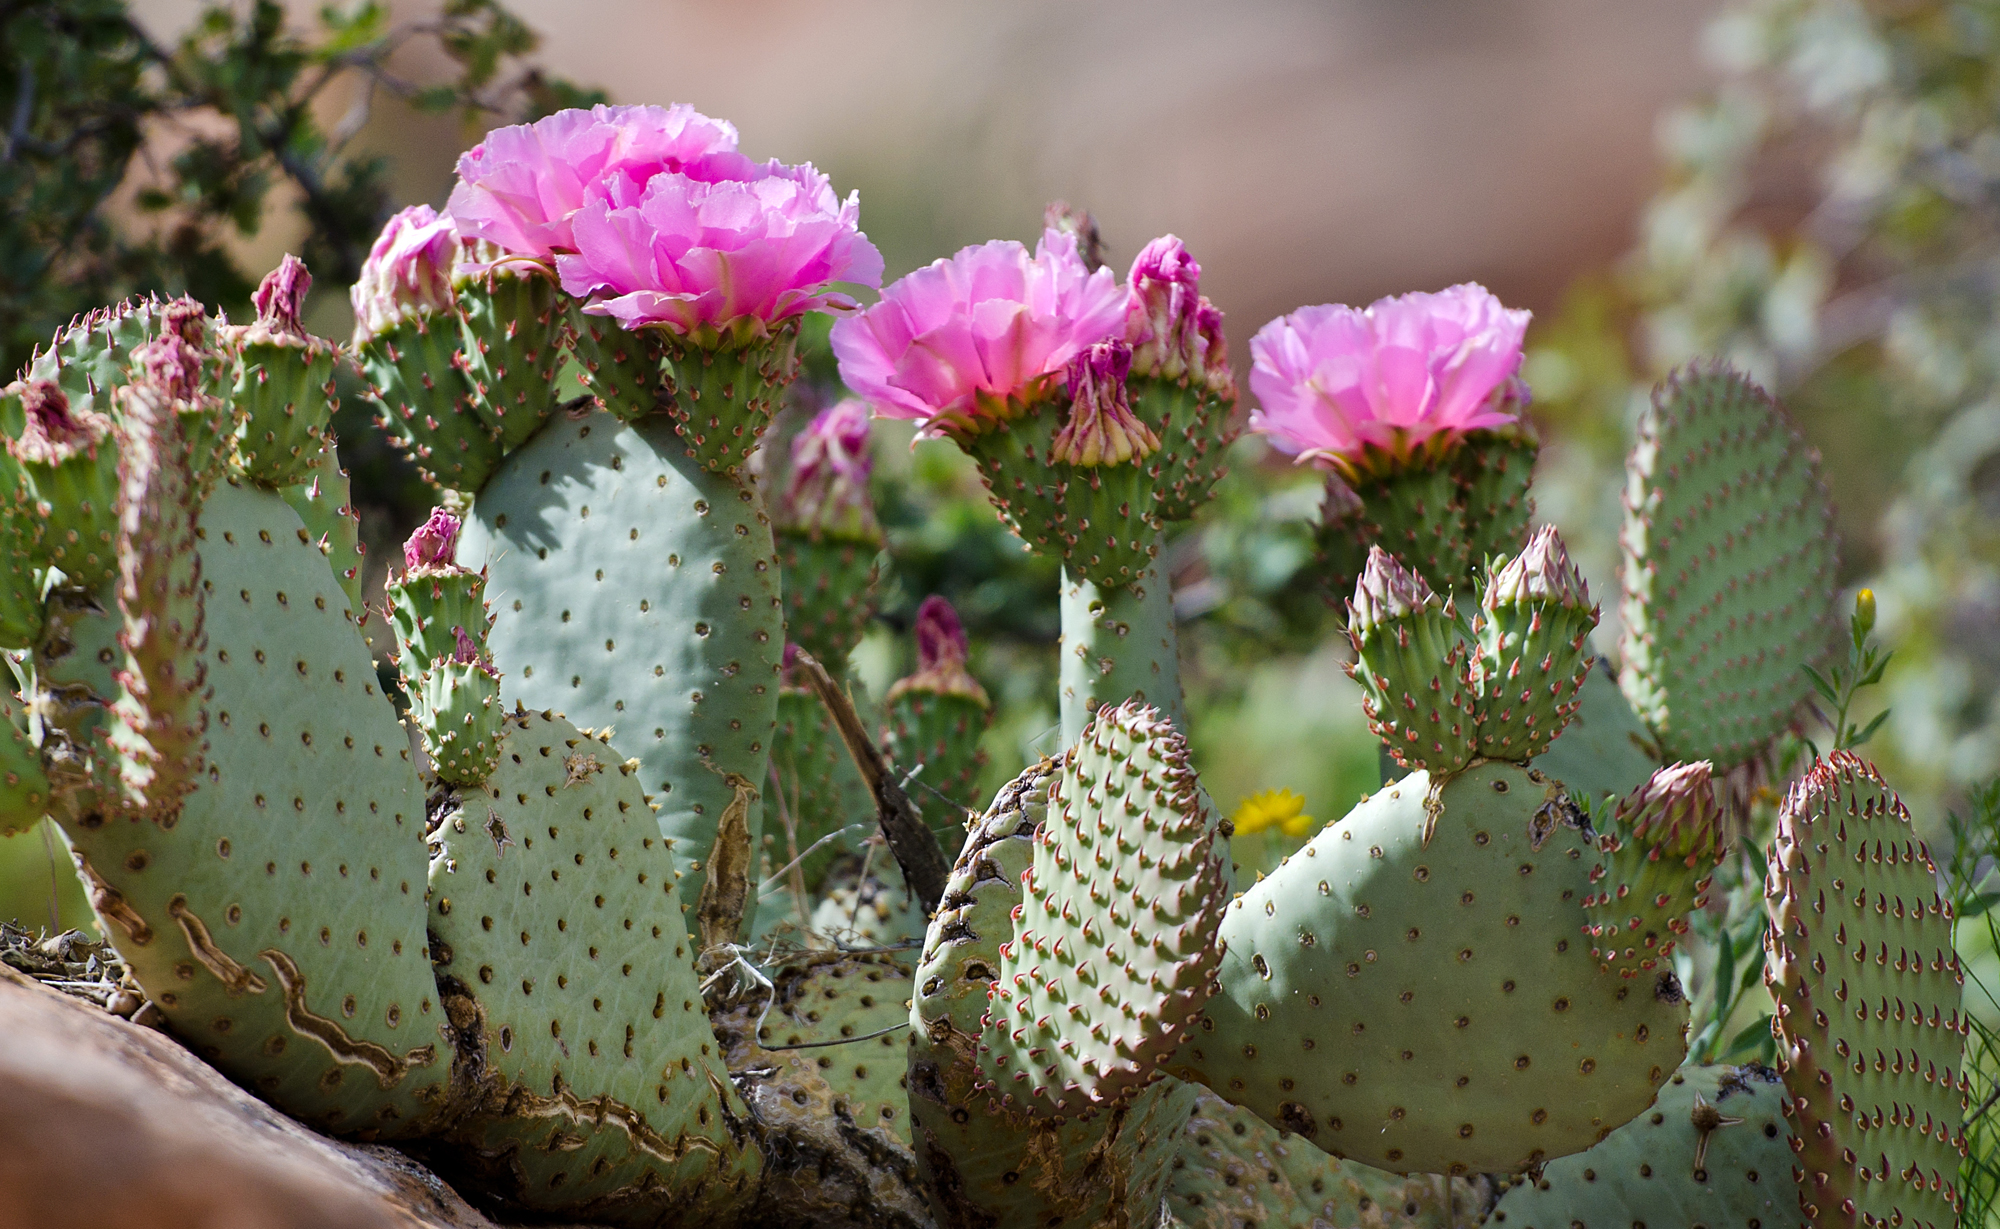 Michael McCollum 5/20/14 Close-up of bevertail cactus flowers.